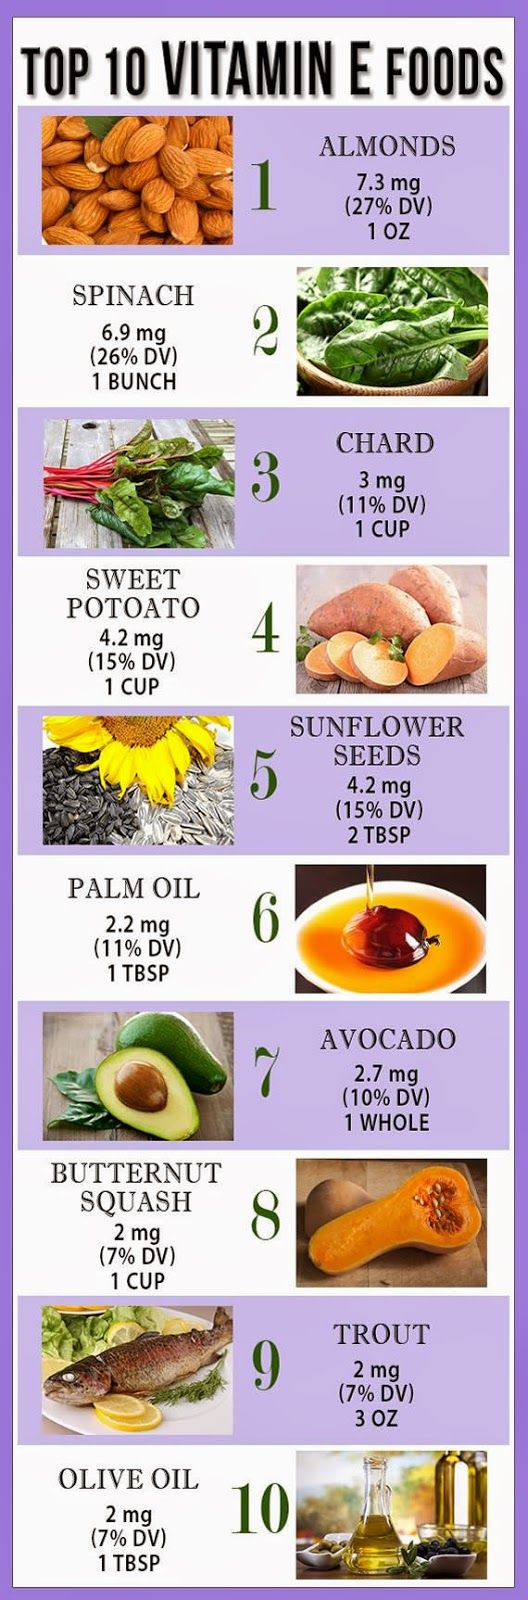 Vitamin E plays an important role in healthy hair and skin, eye health and combatting PMS. Try these Top 10 Vitamin E Rich Foods to get your daily dose!